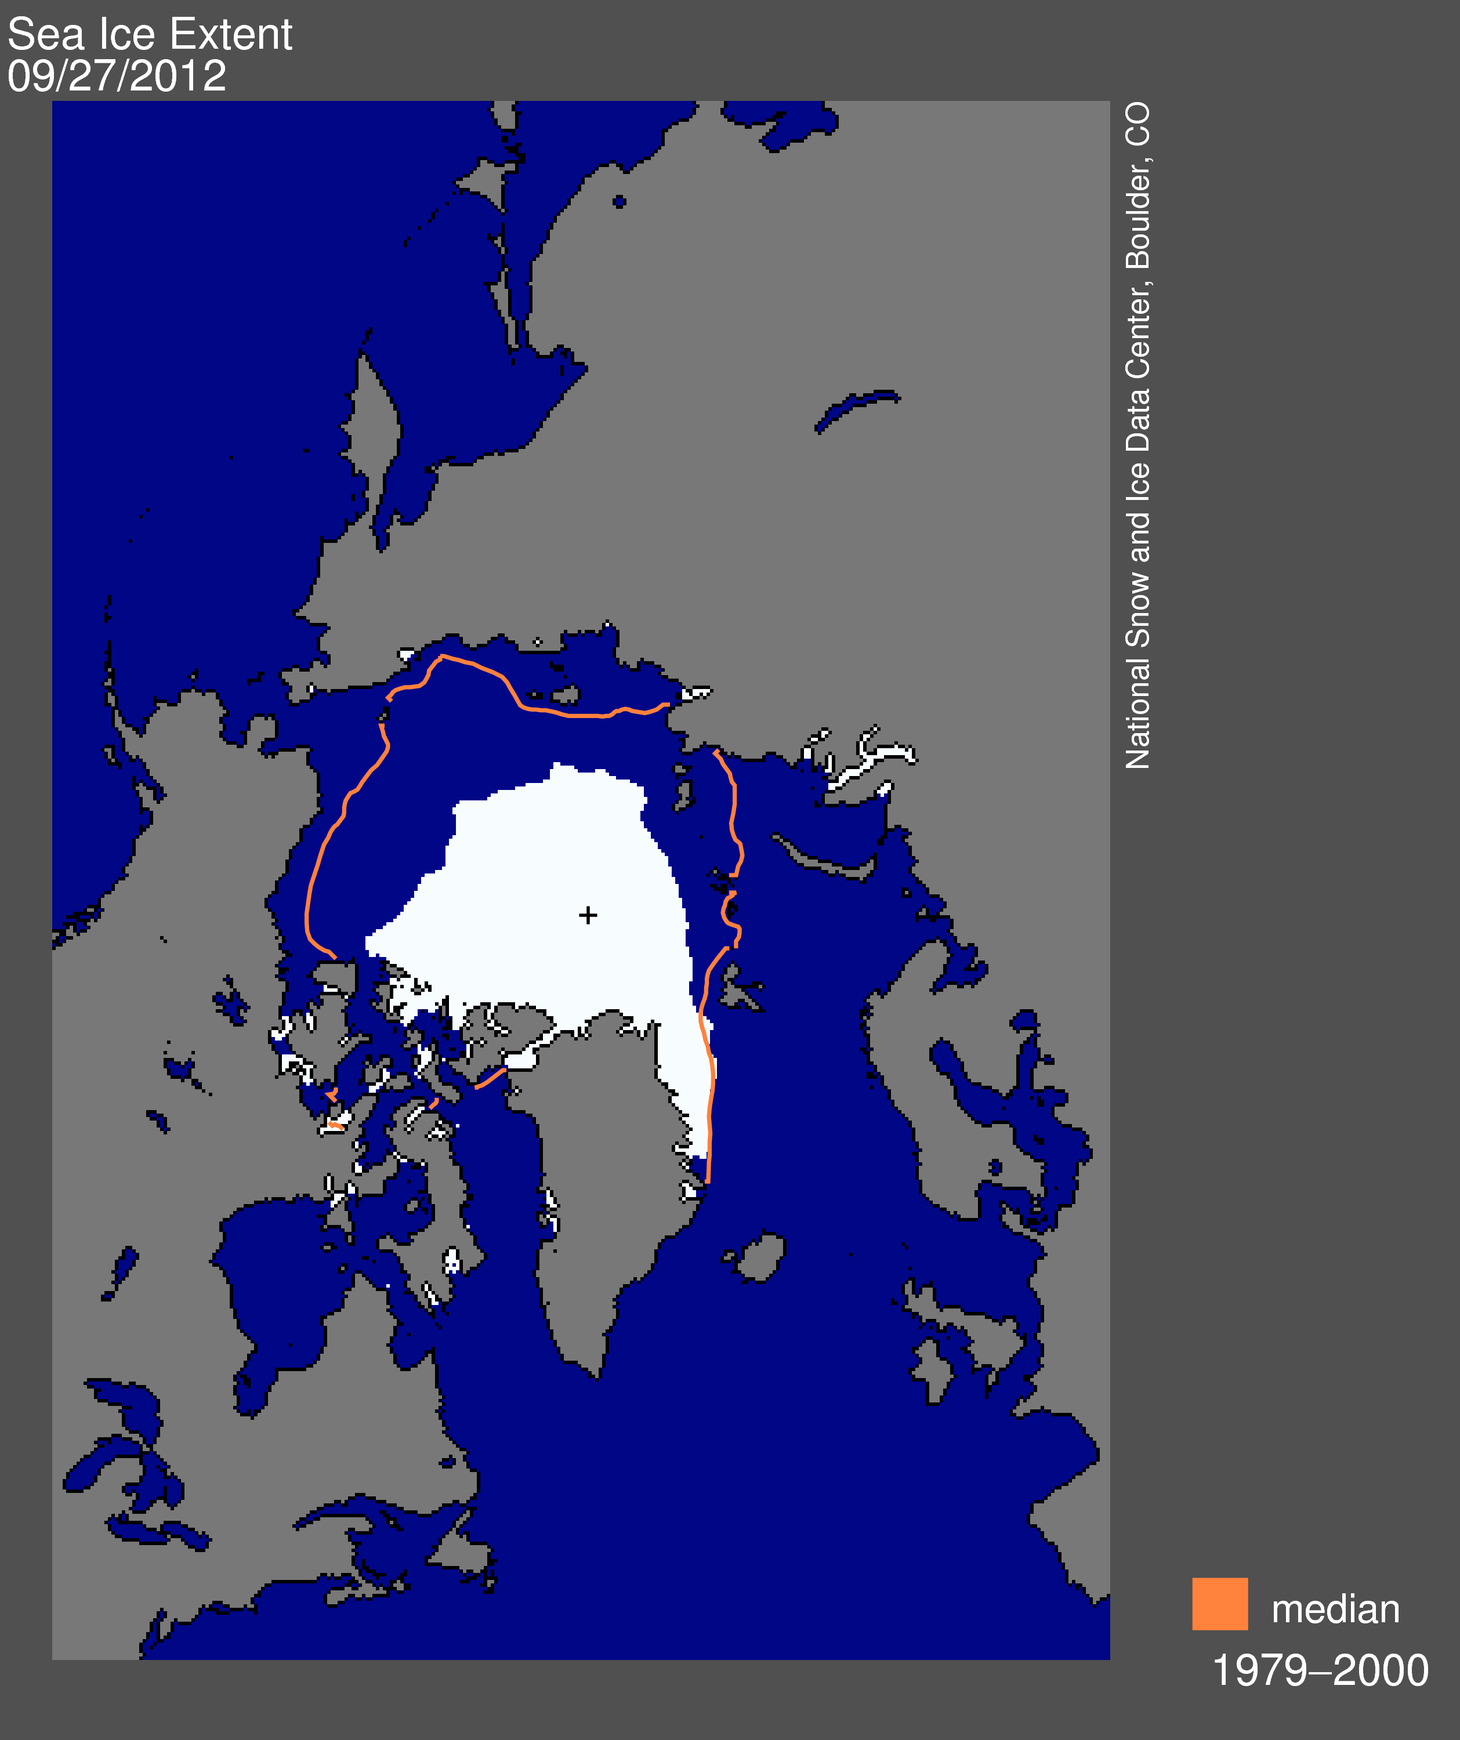 the image shows the average area that Arctic sea ice covered from 1979 through 2000 and the much smaller area the sea ice covers now.